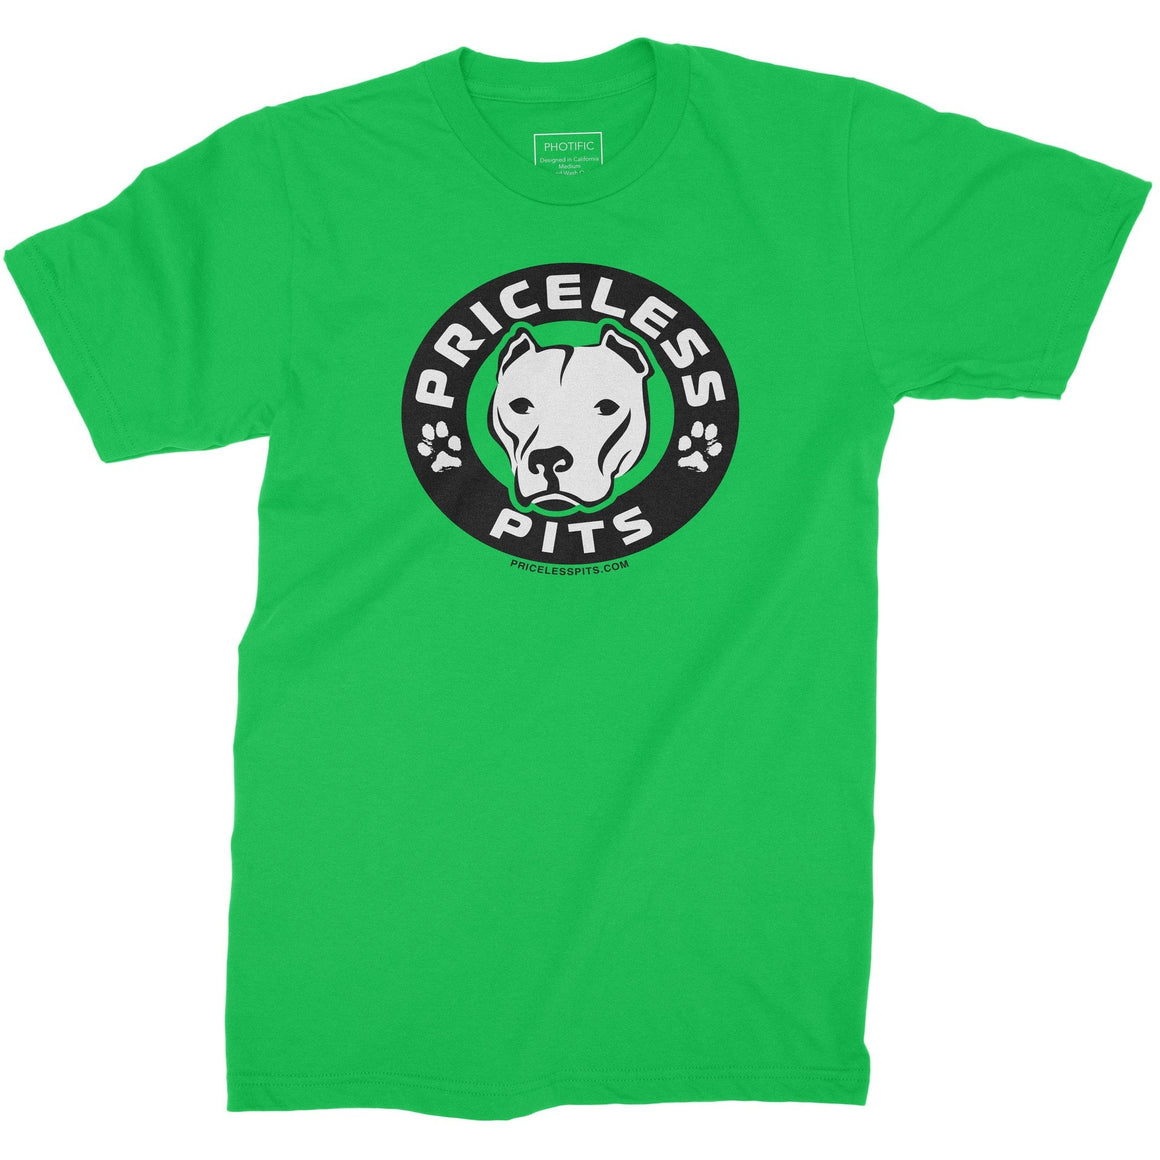 Priceless Pits Logo Kelly Green Youth Pitbull Shirt